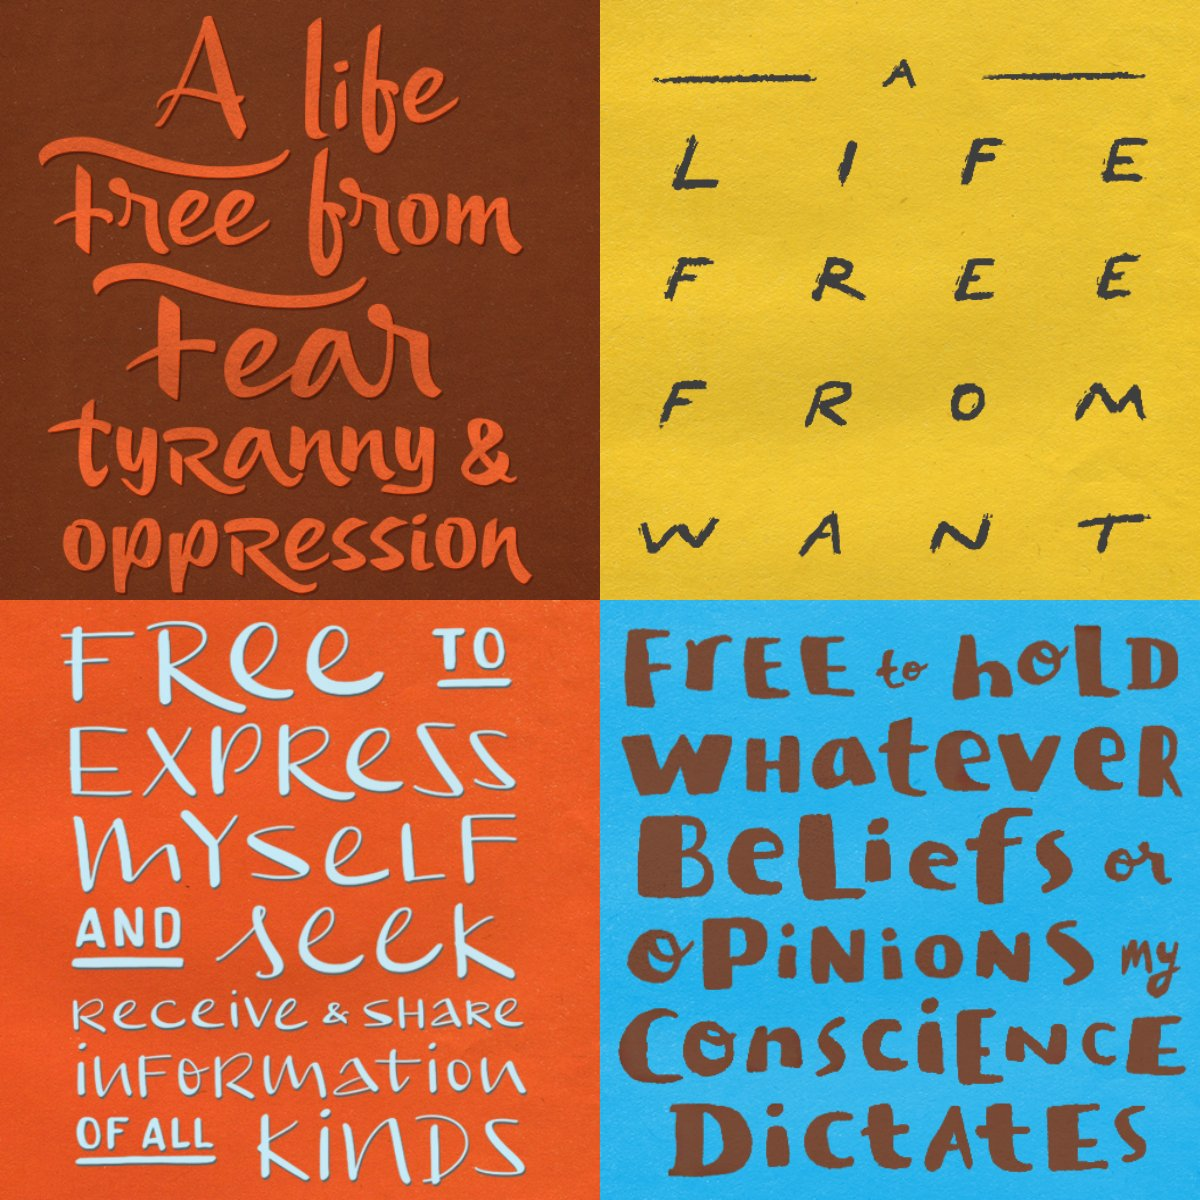 Join us today - #HumanRightsDay - to explore the meaning of humanity's inalienable freedoms https://t.co/x2kp5GiVj4 https://t.co/frNypPJTWF